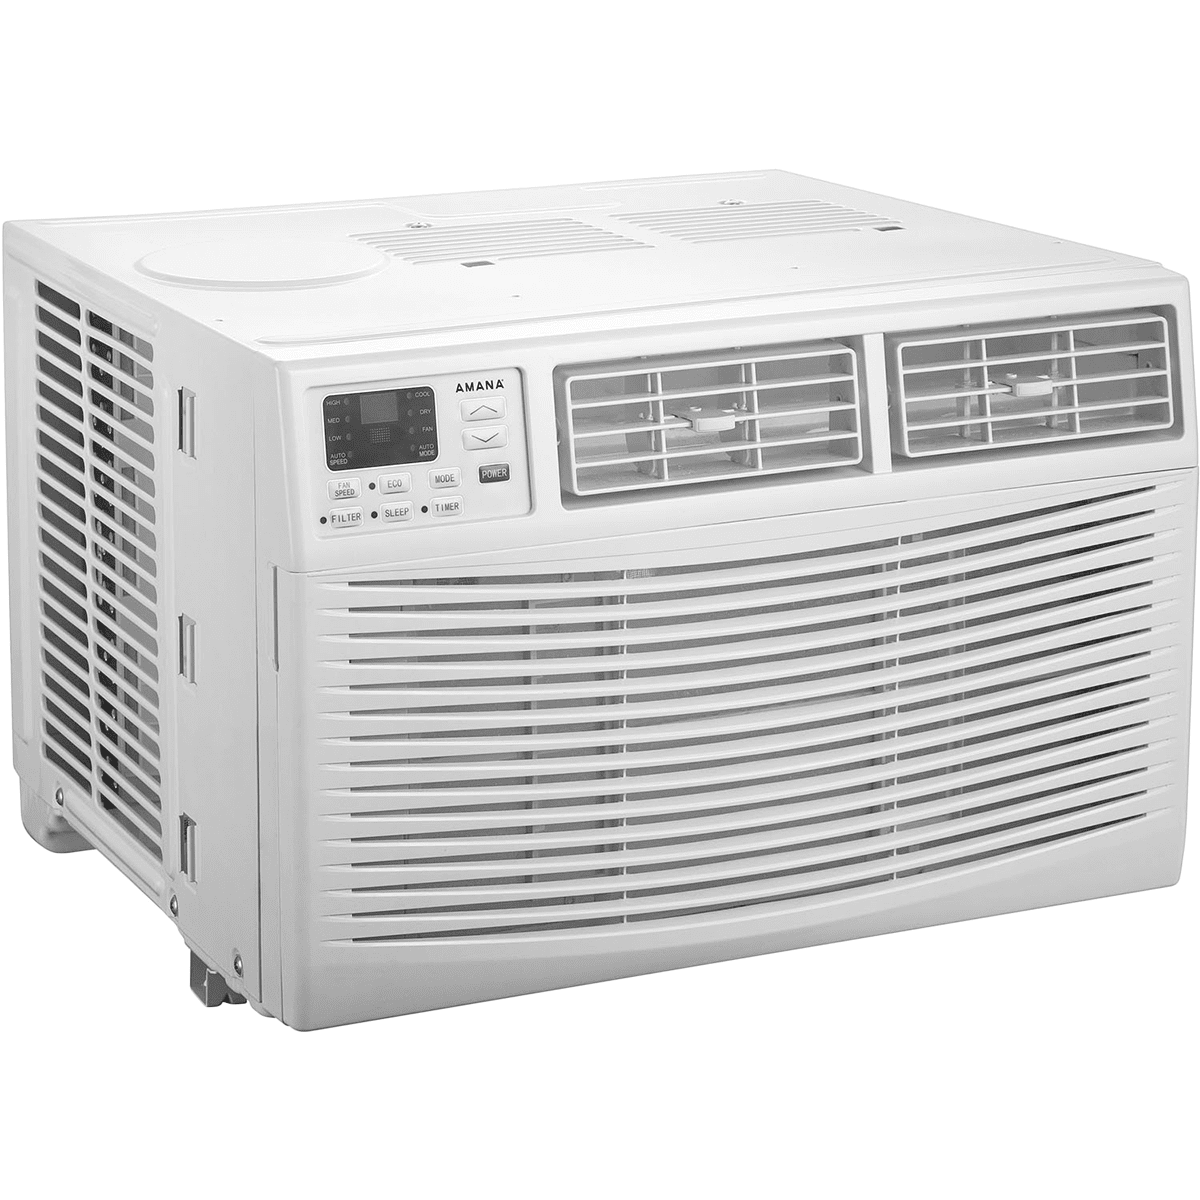 Amana 12000 Btu Window Air Conditioner With Electronic Controls Amap121bw